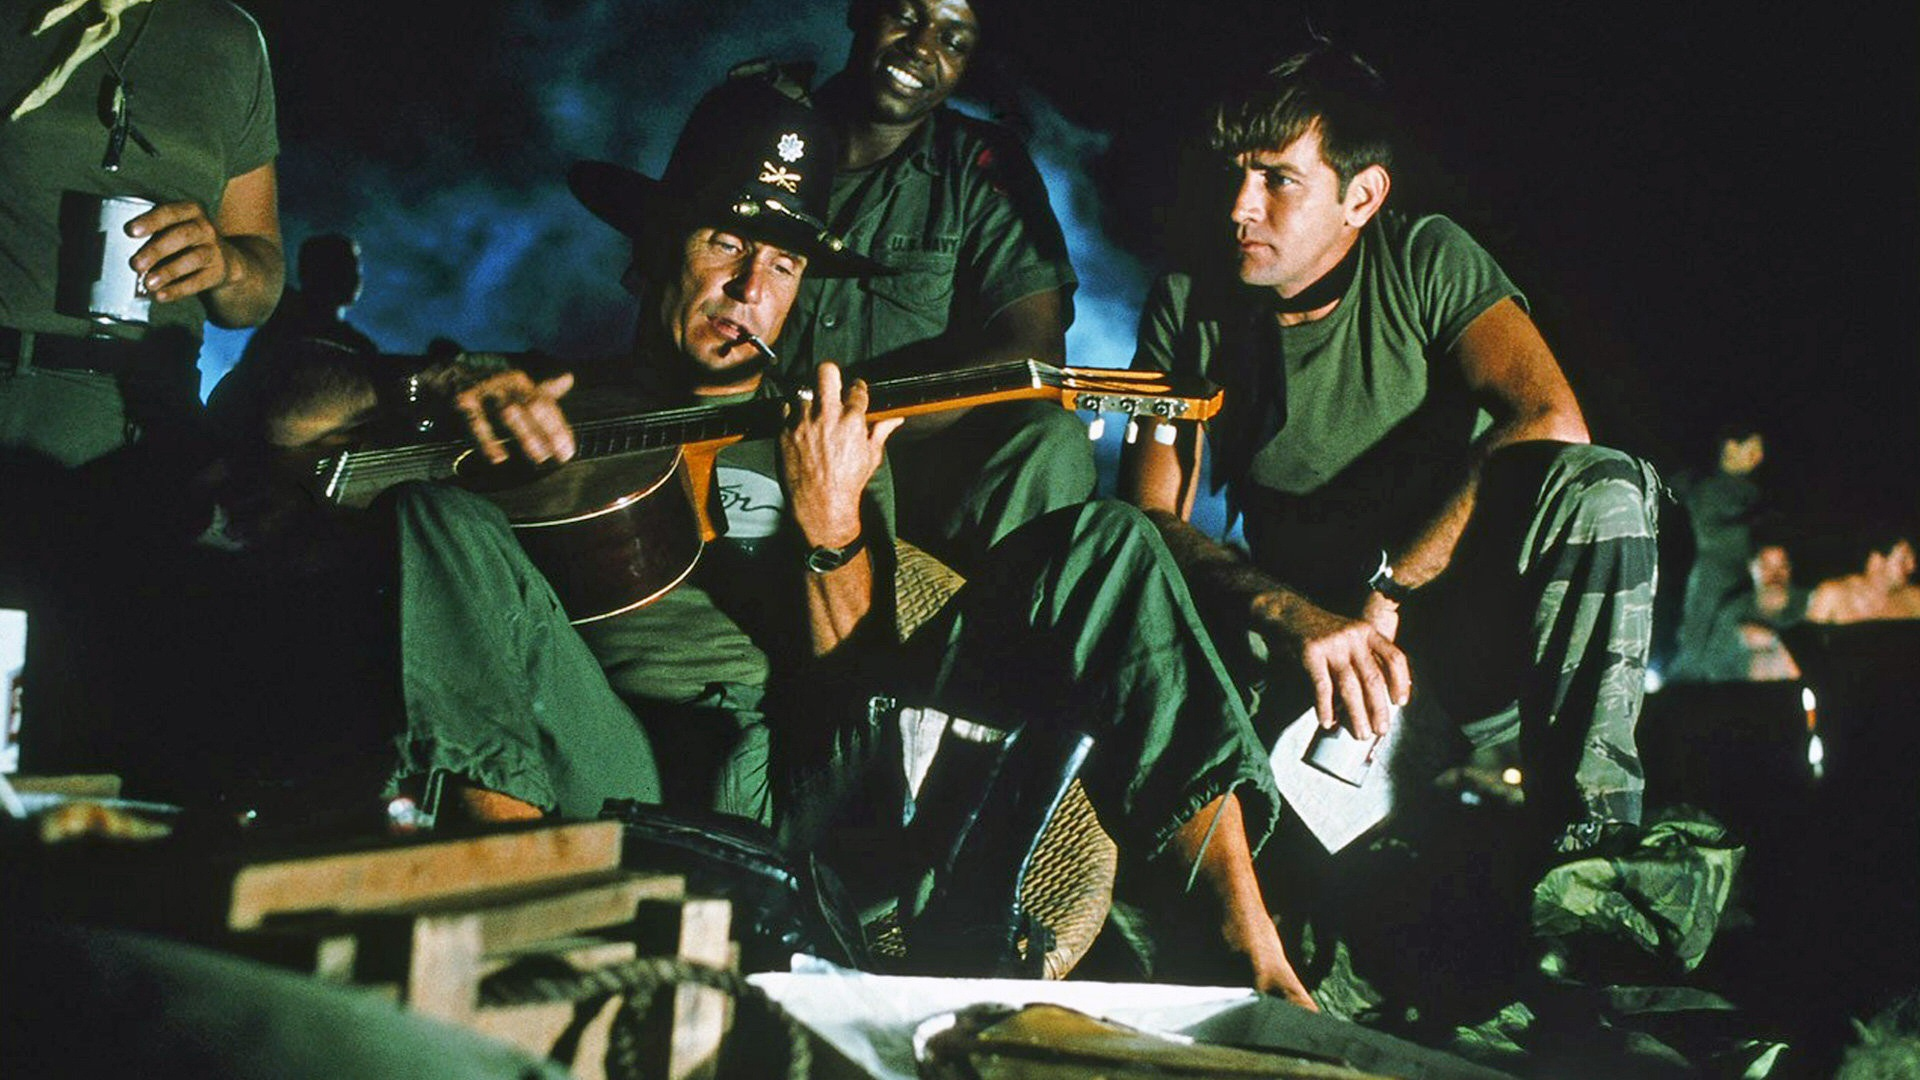 apocalypse now wallpaper 1920x1080